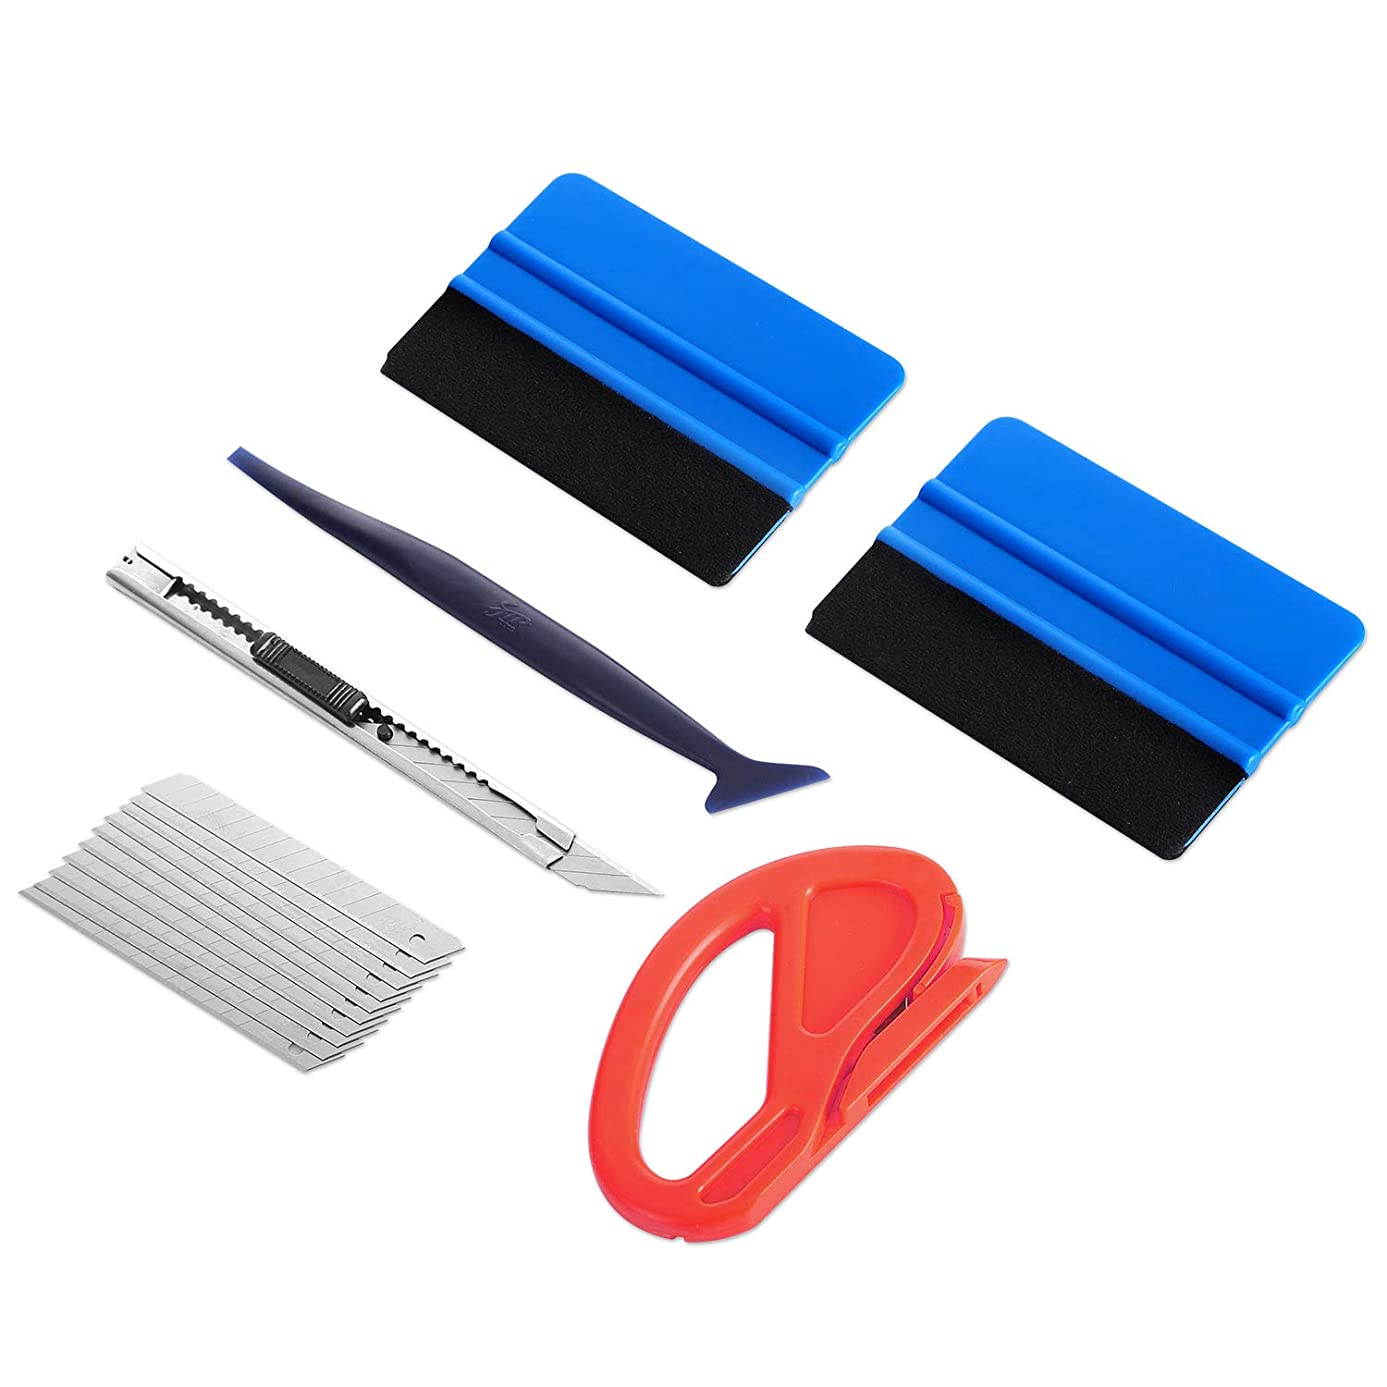 GISSVOGEEK Car Vinyl Wrap Tools Vehicle Window Tint Tool Kit with Felt Squeegee, Vinyl Cutter Knife, Mini Squeegee, Utility Knife and Blades